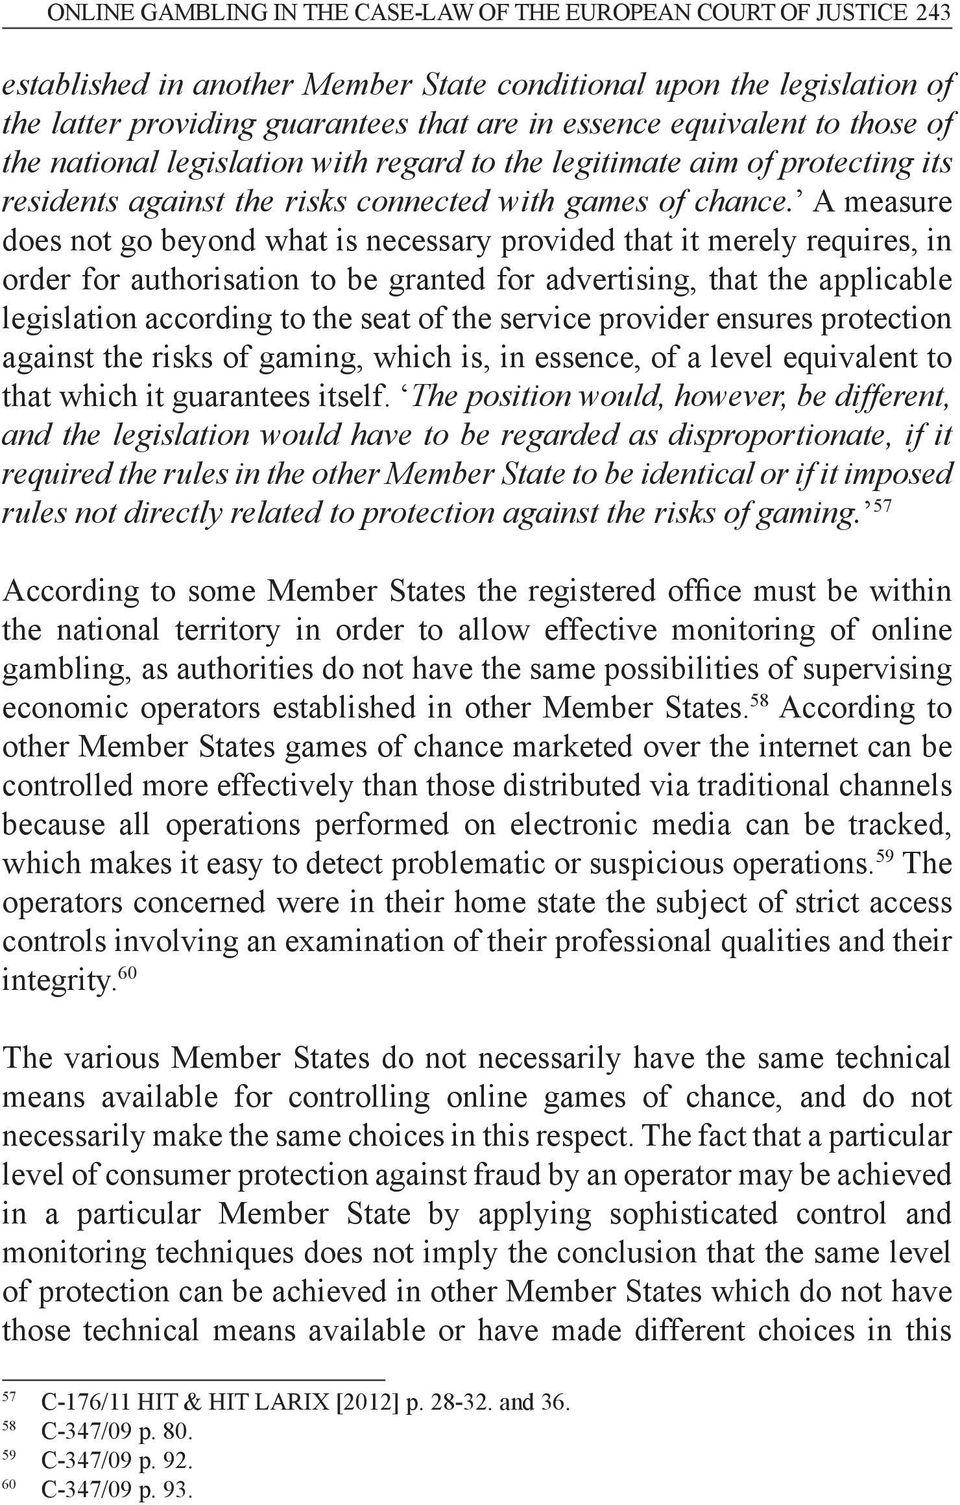 A measure does not go beyond what is necessary provided that it merely requires, in order for authorisation to be granted for advertising, that the applicable legislation according to the seat of the